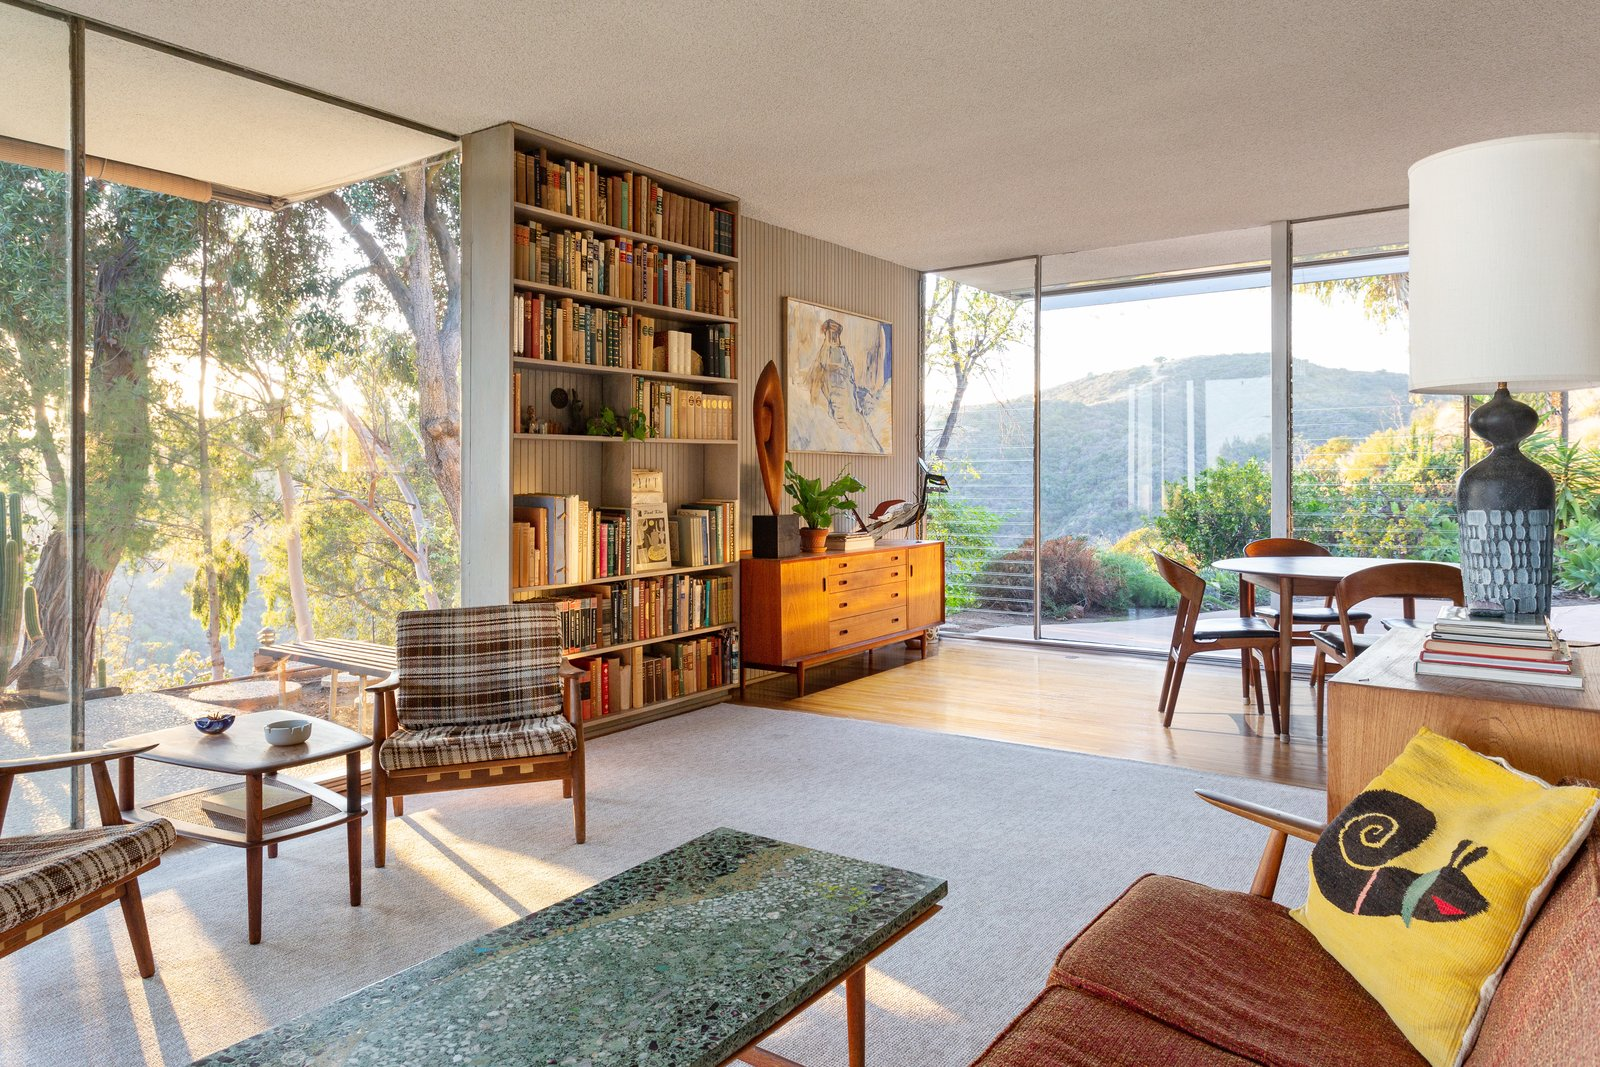 A Lovely, Light-Filled Neutra Home Just Listed For the First Time at $3M